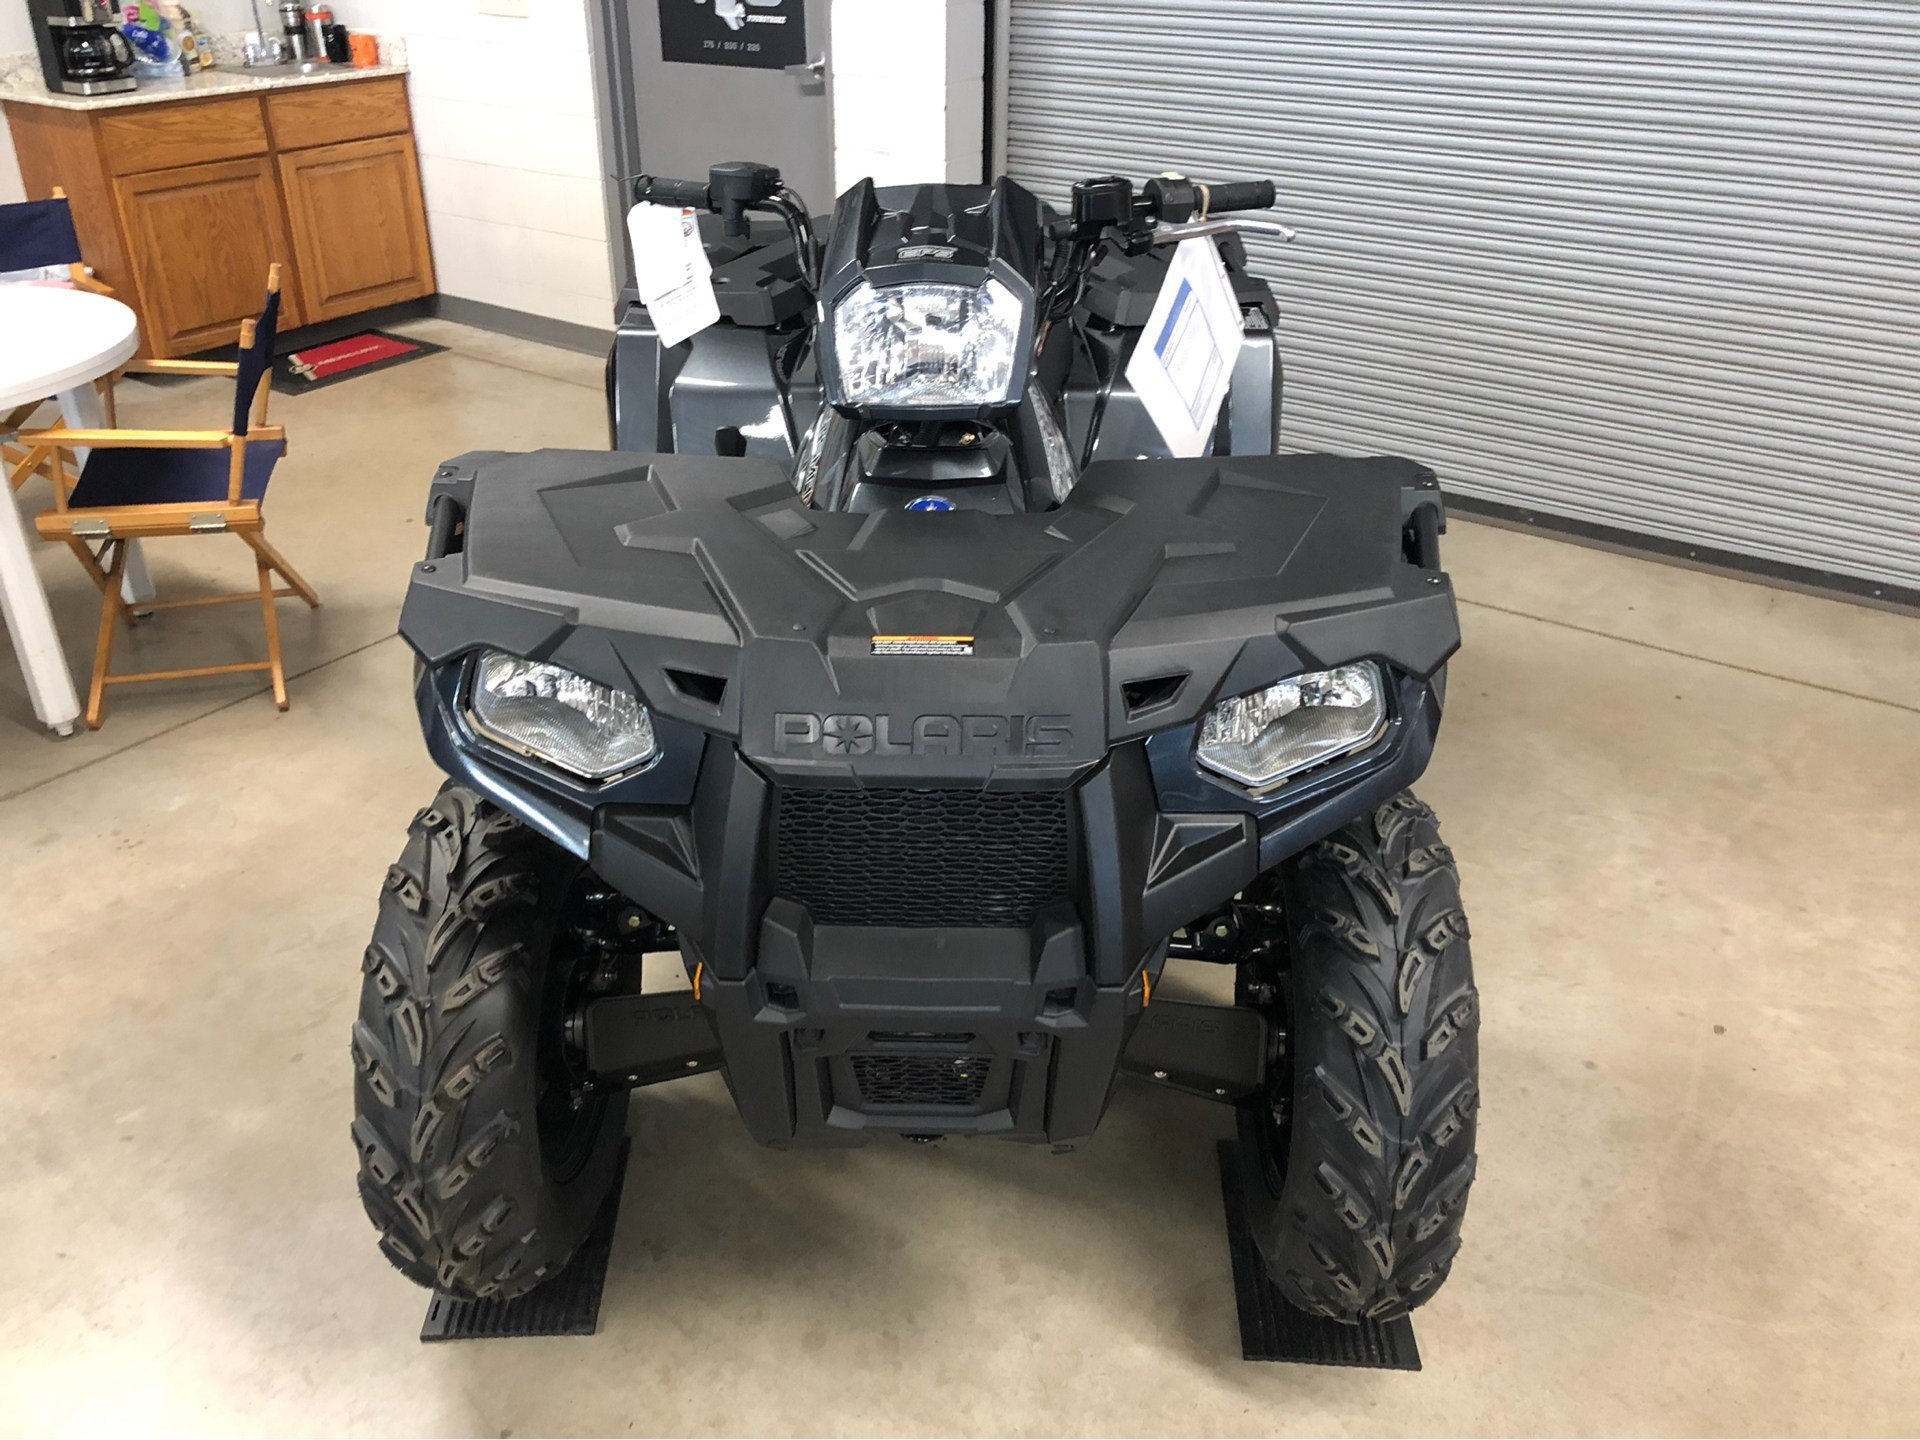 2019 Polaris Sportsman 570 SP in Appleton, Wisconsin - Photo 2